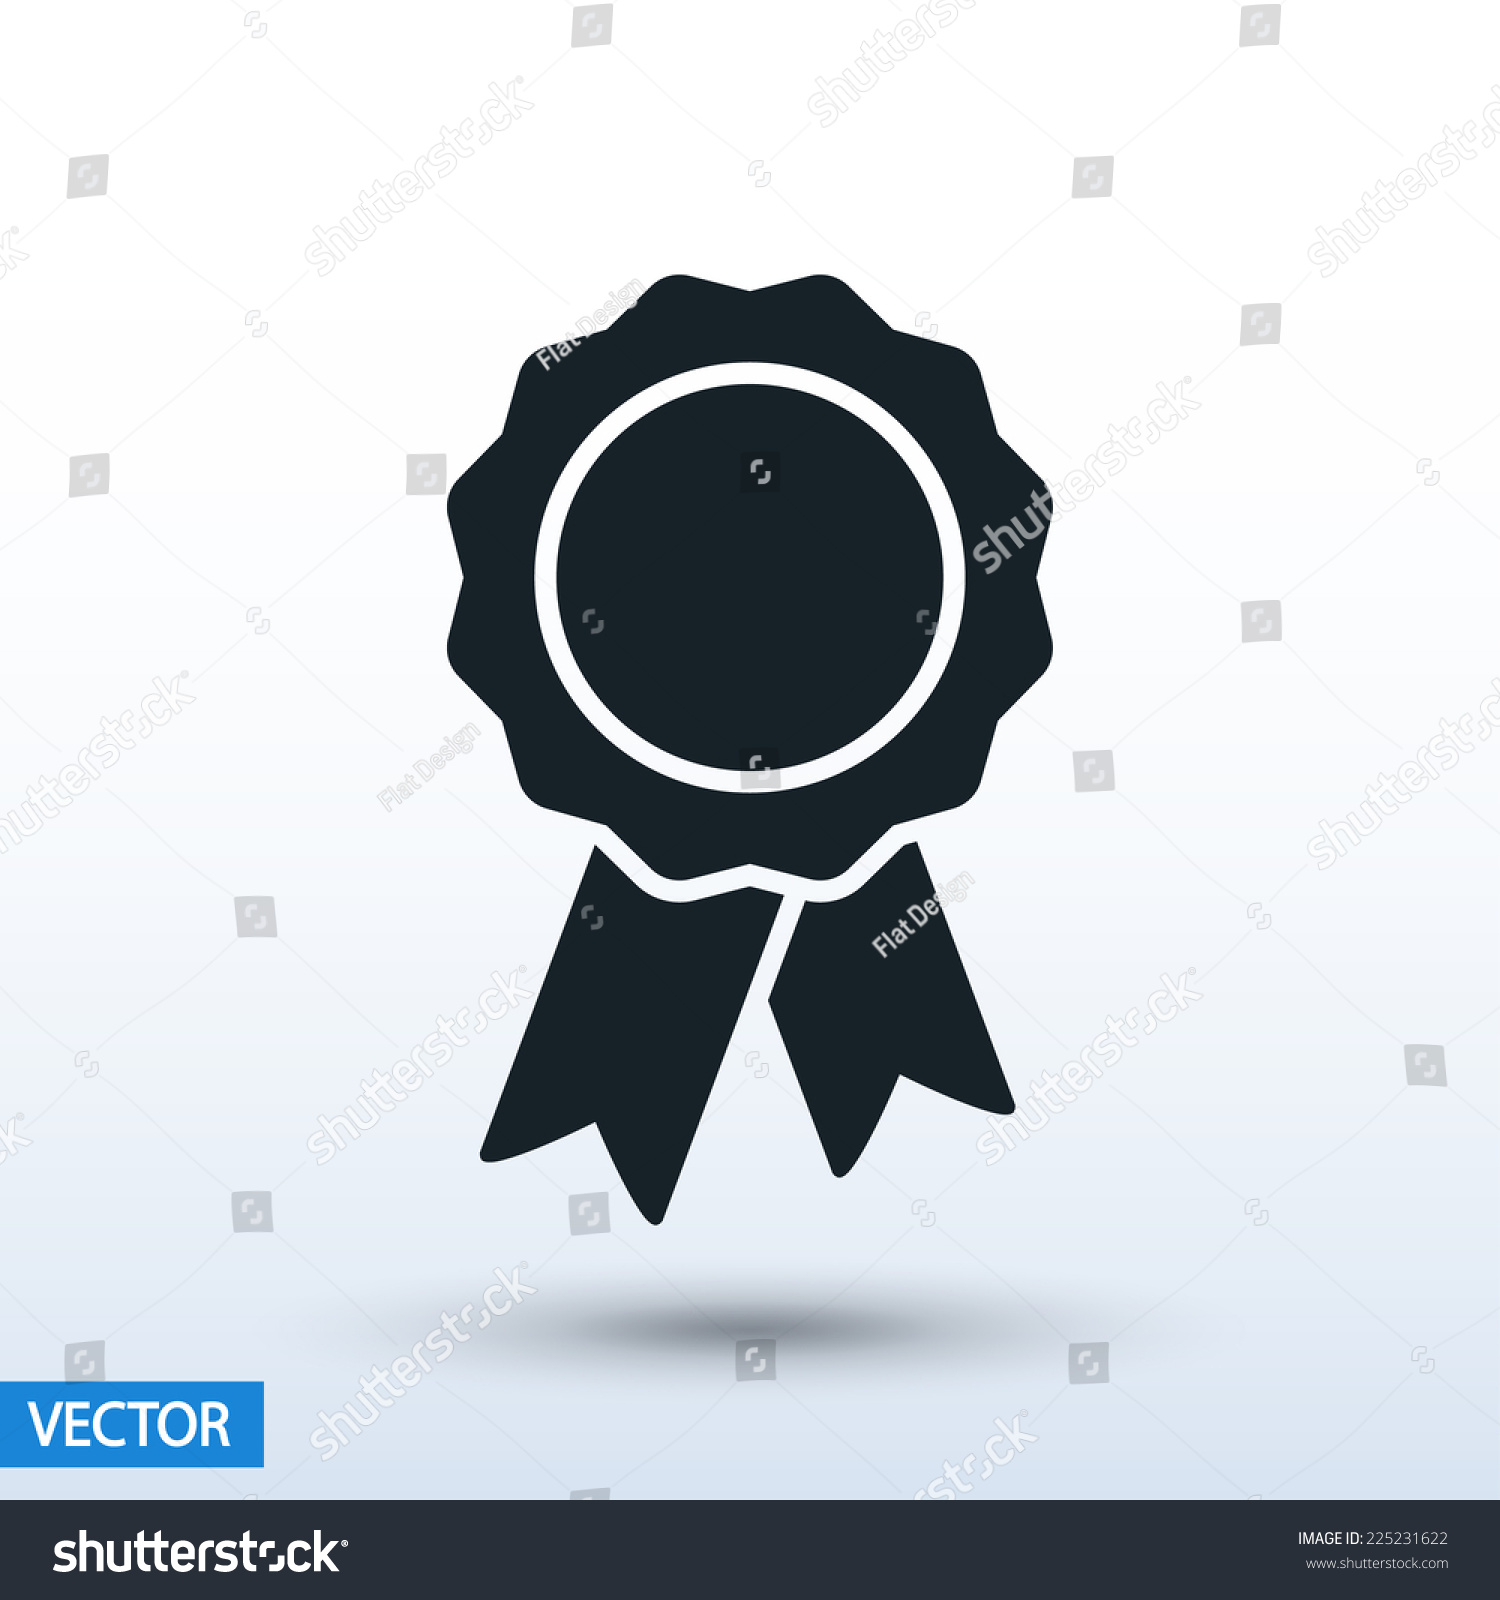 badge with ribbons icon vector illustration Flat design style